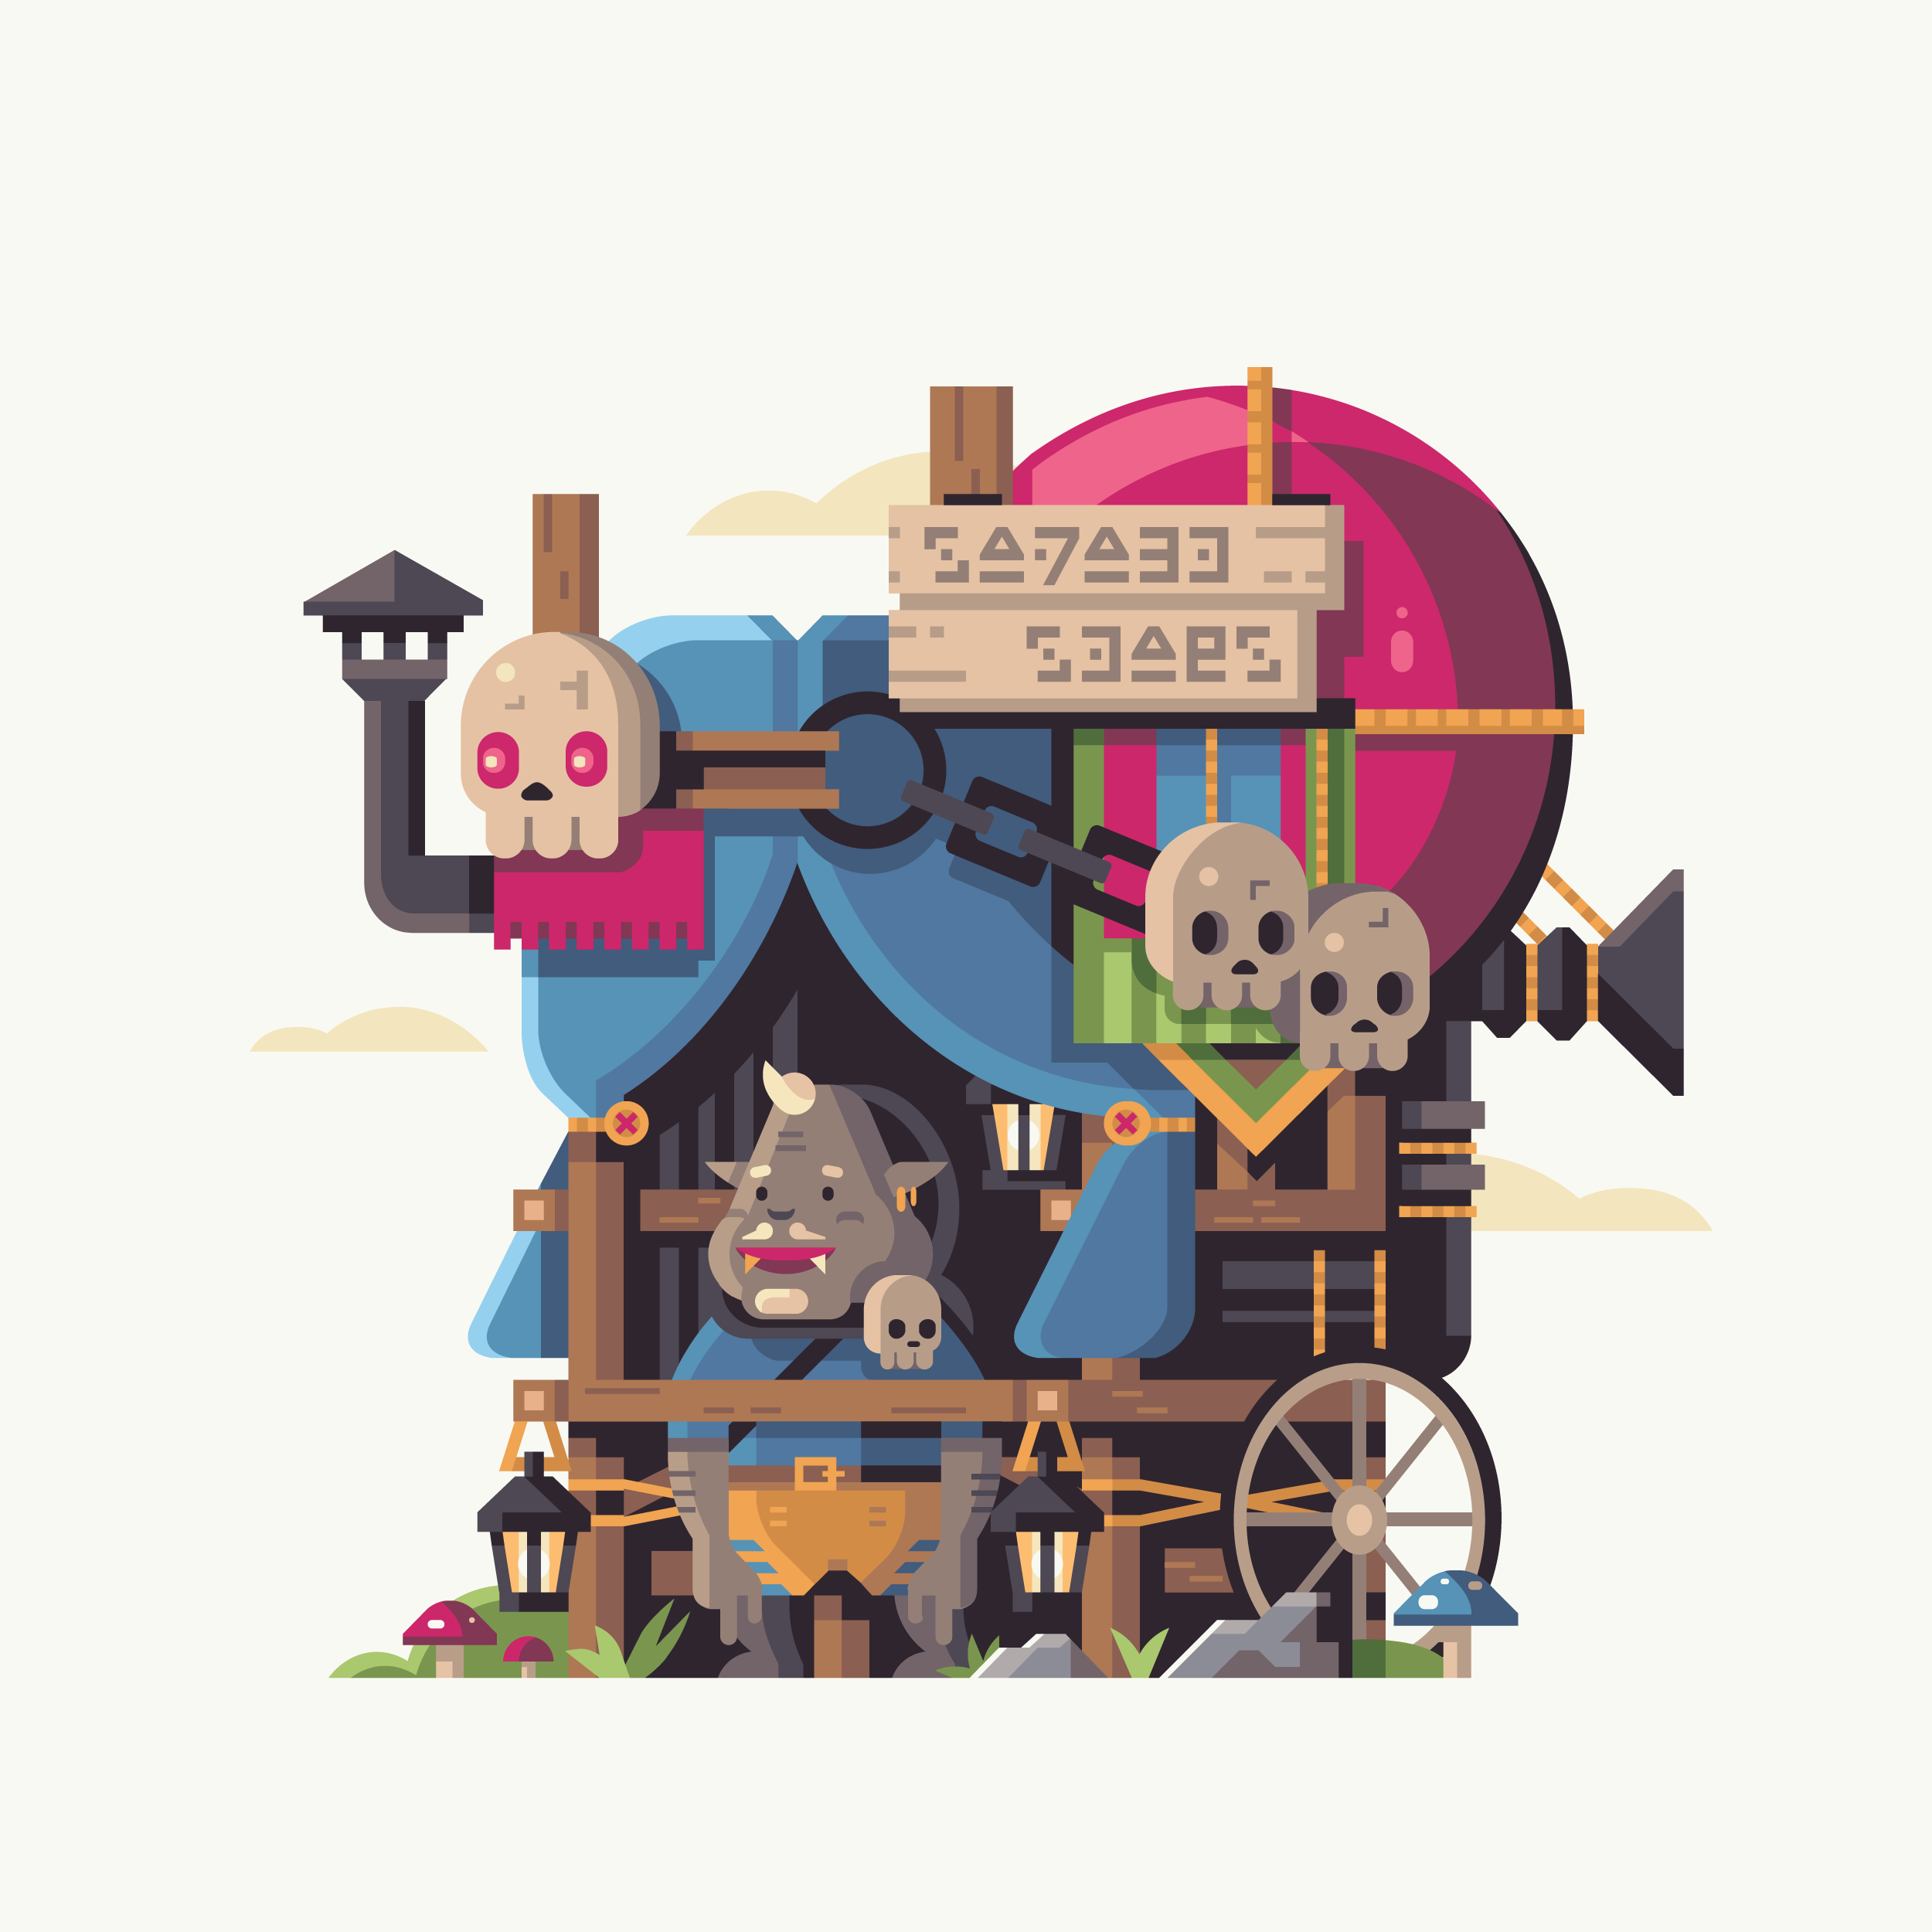 Wild series by Matt Anderson. Inspired by Zelda Breath of the Wild. Ghastly Salesman (Kilton).